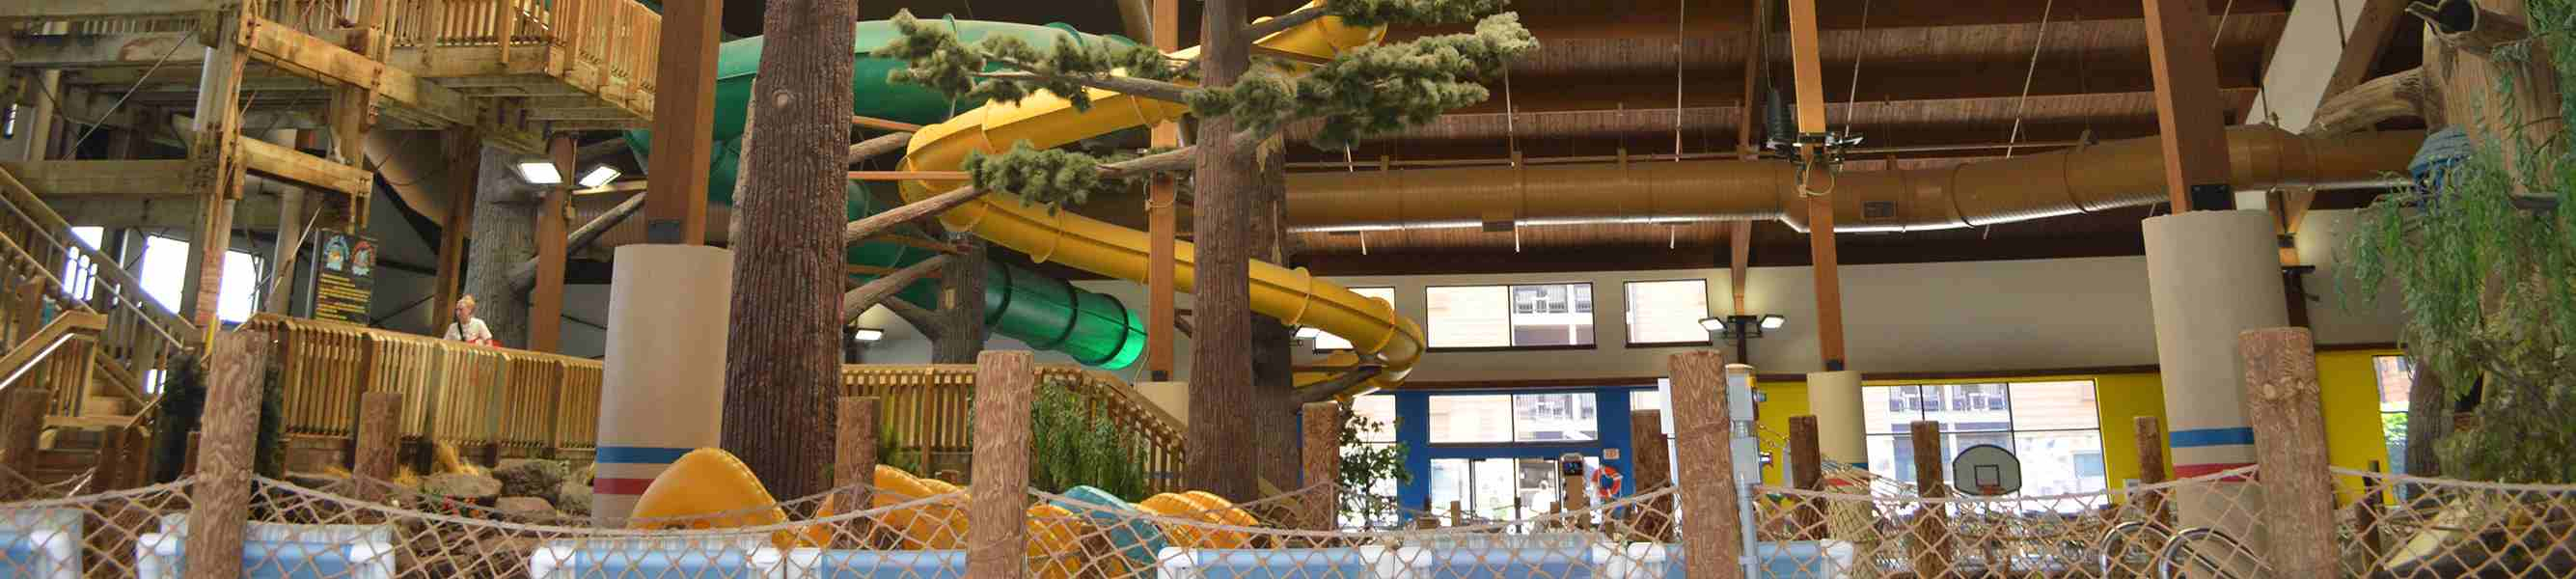 Indoor water parks near Chicago